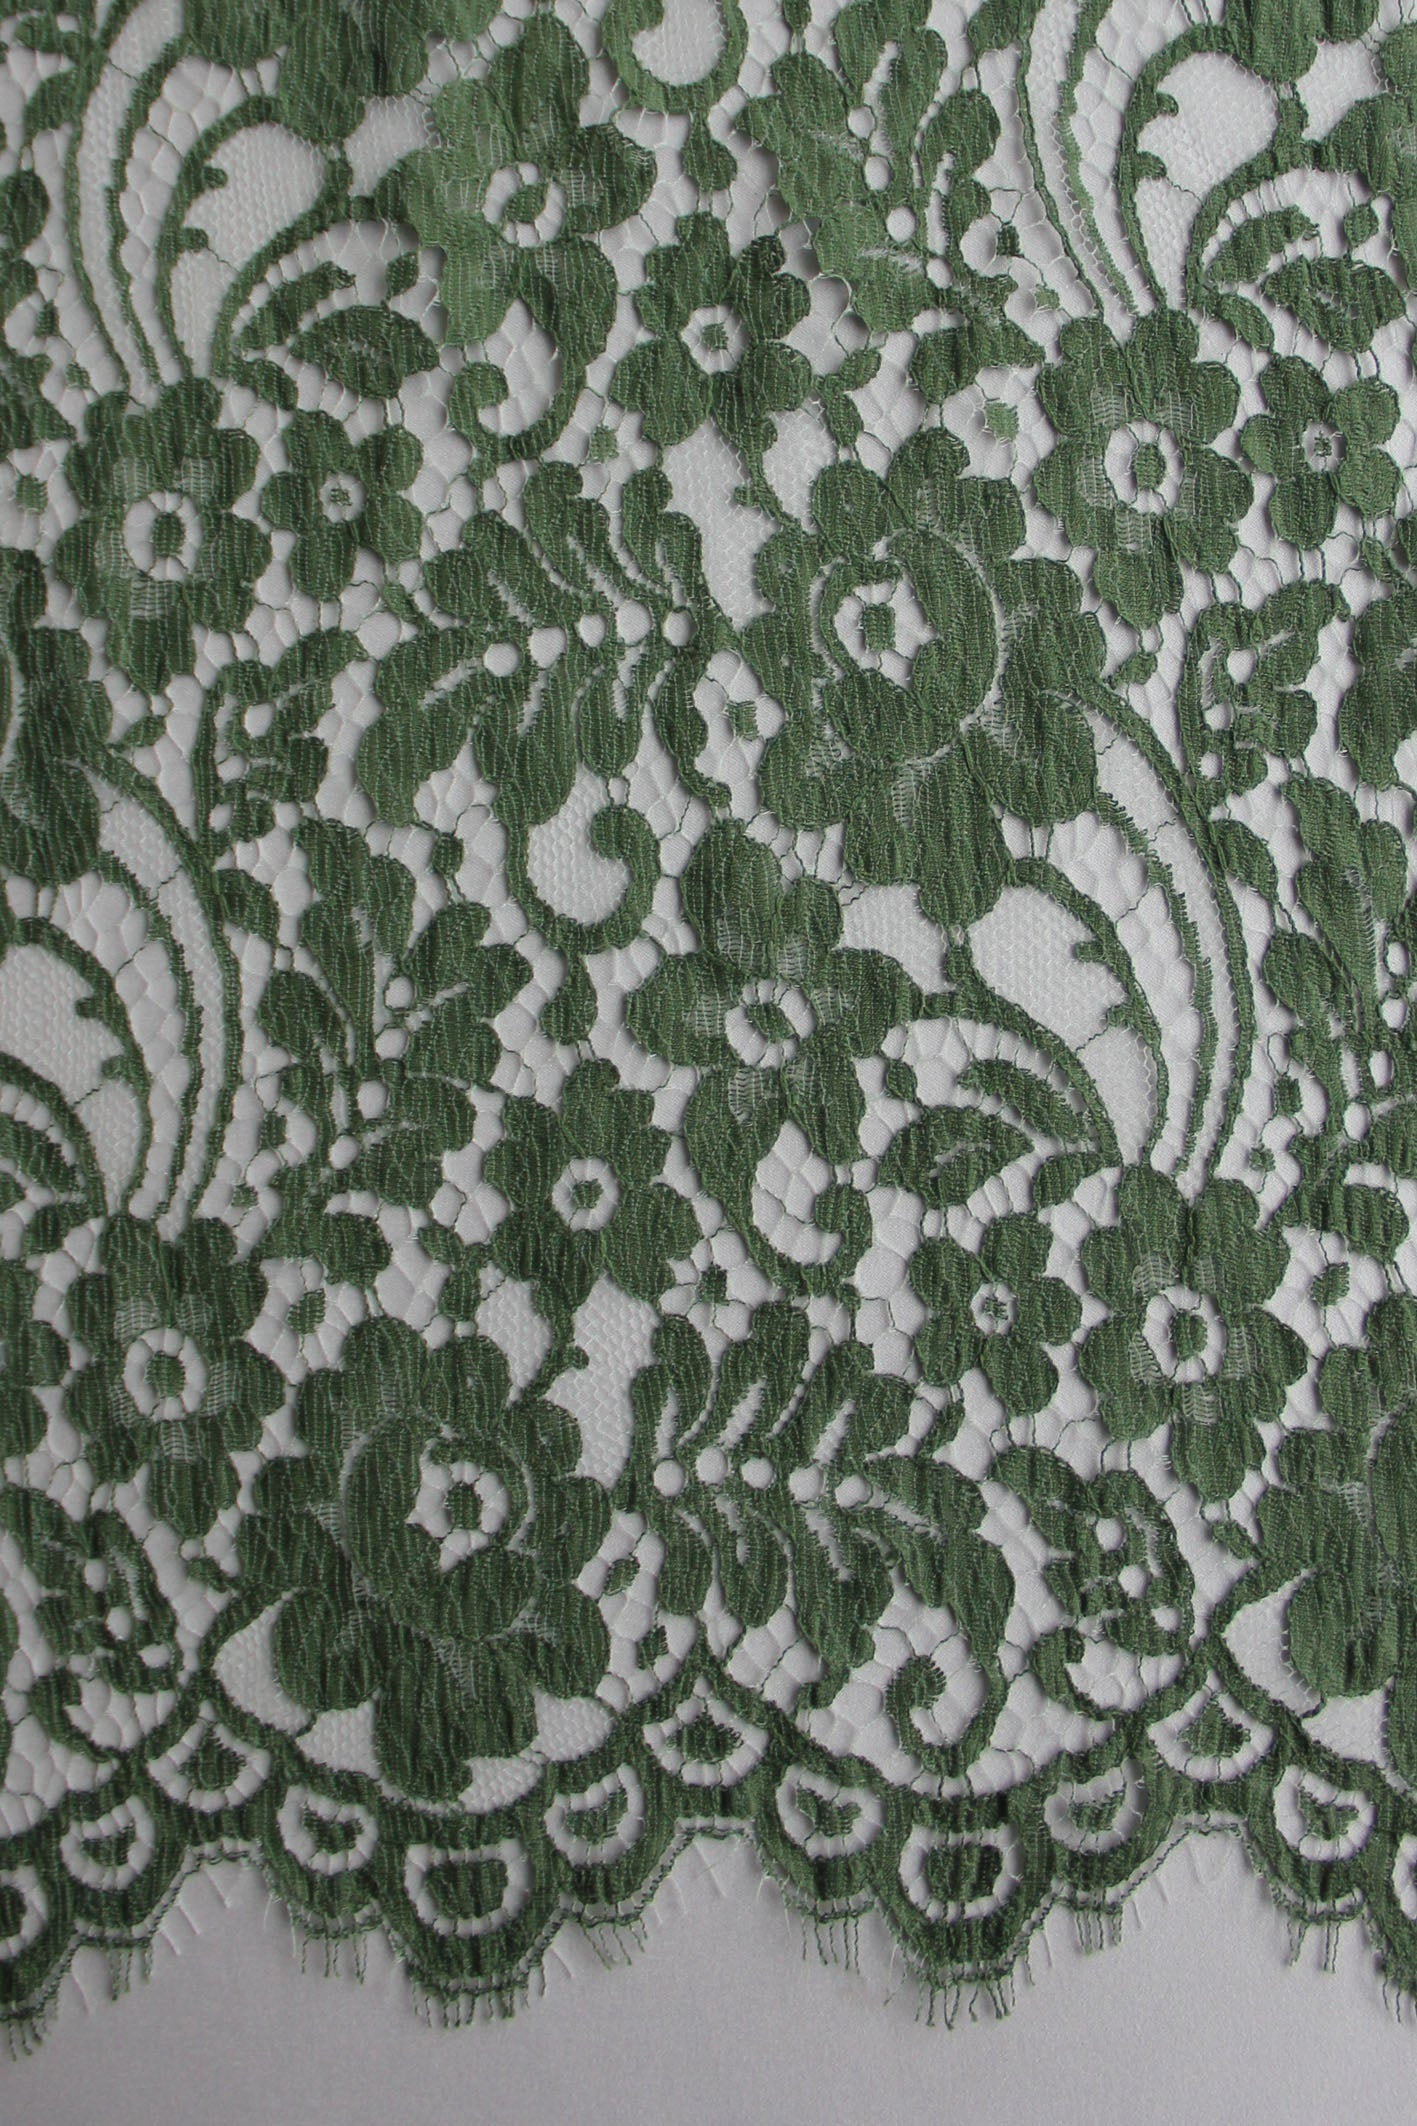 Dark Green Lace - Jemima.